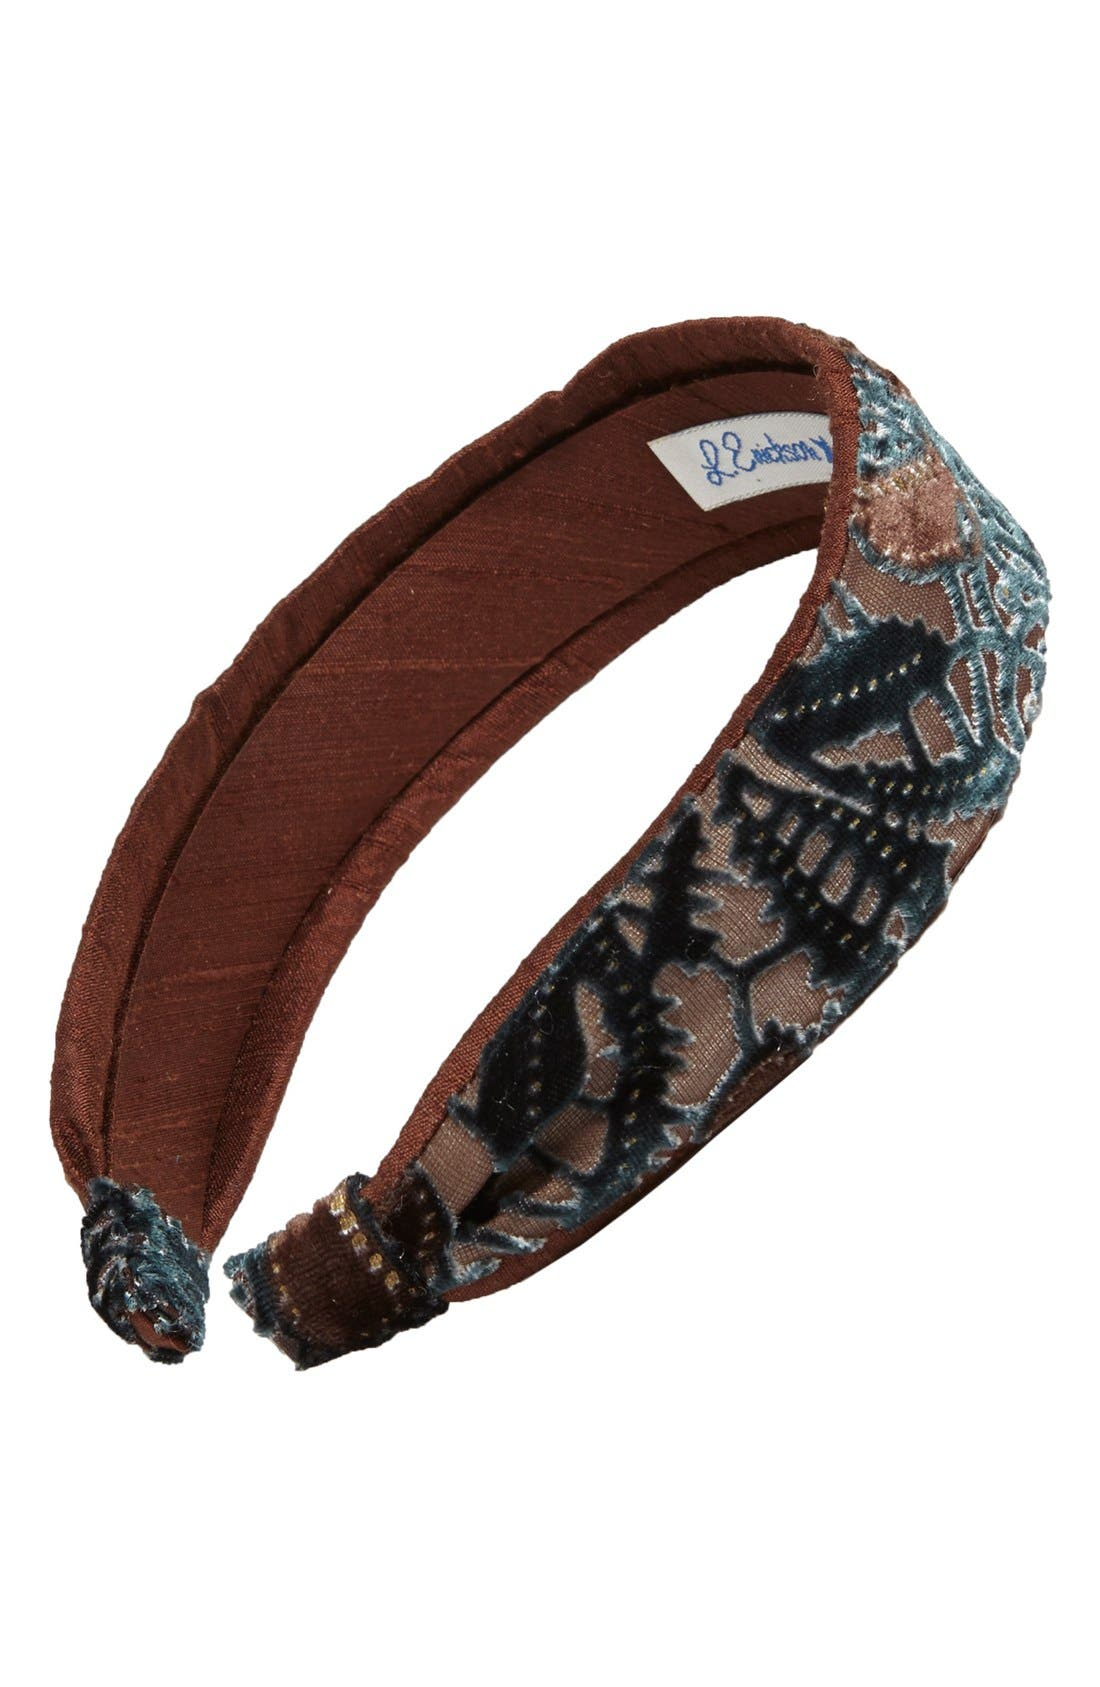 L. Erickson Two Tone Scarf Headband